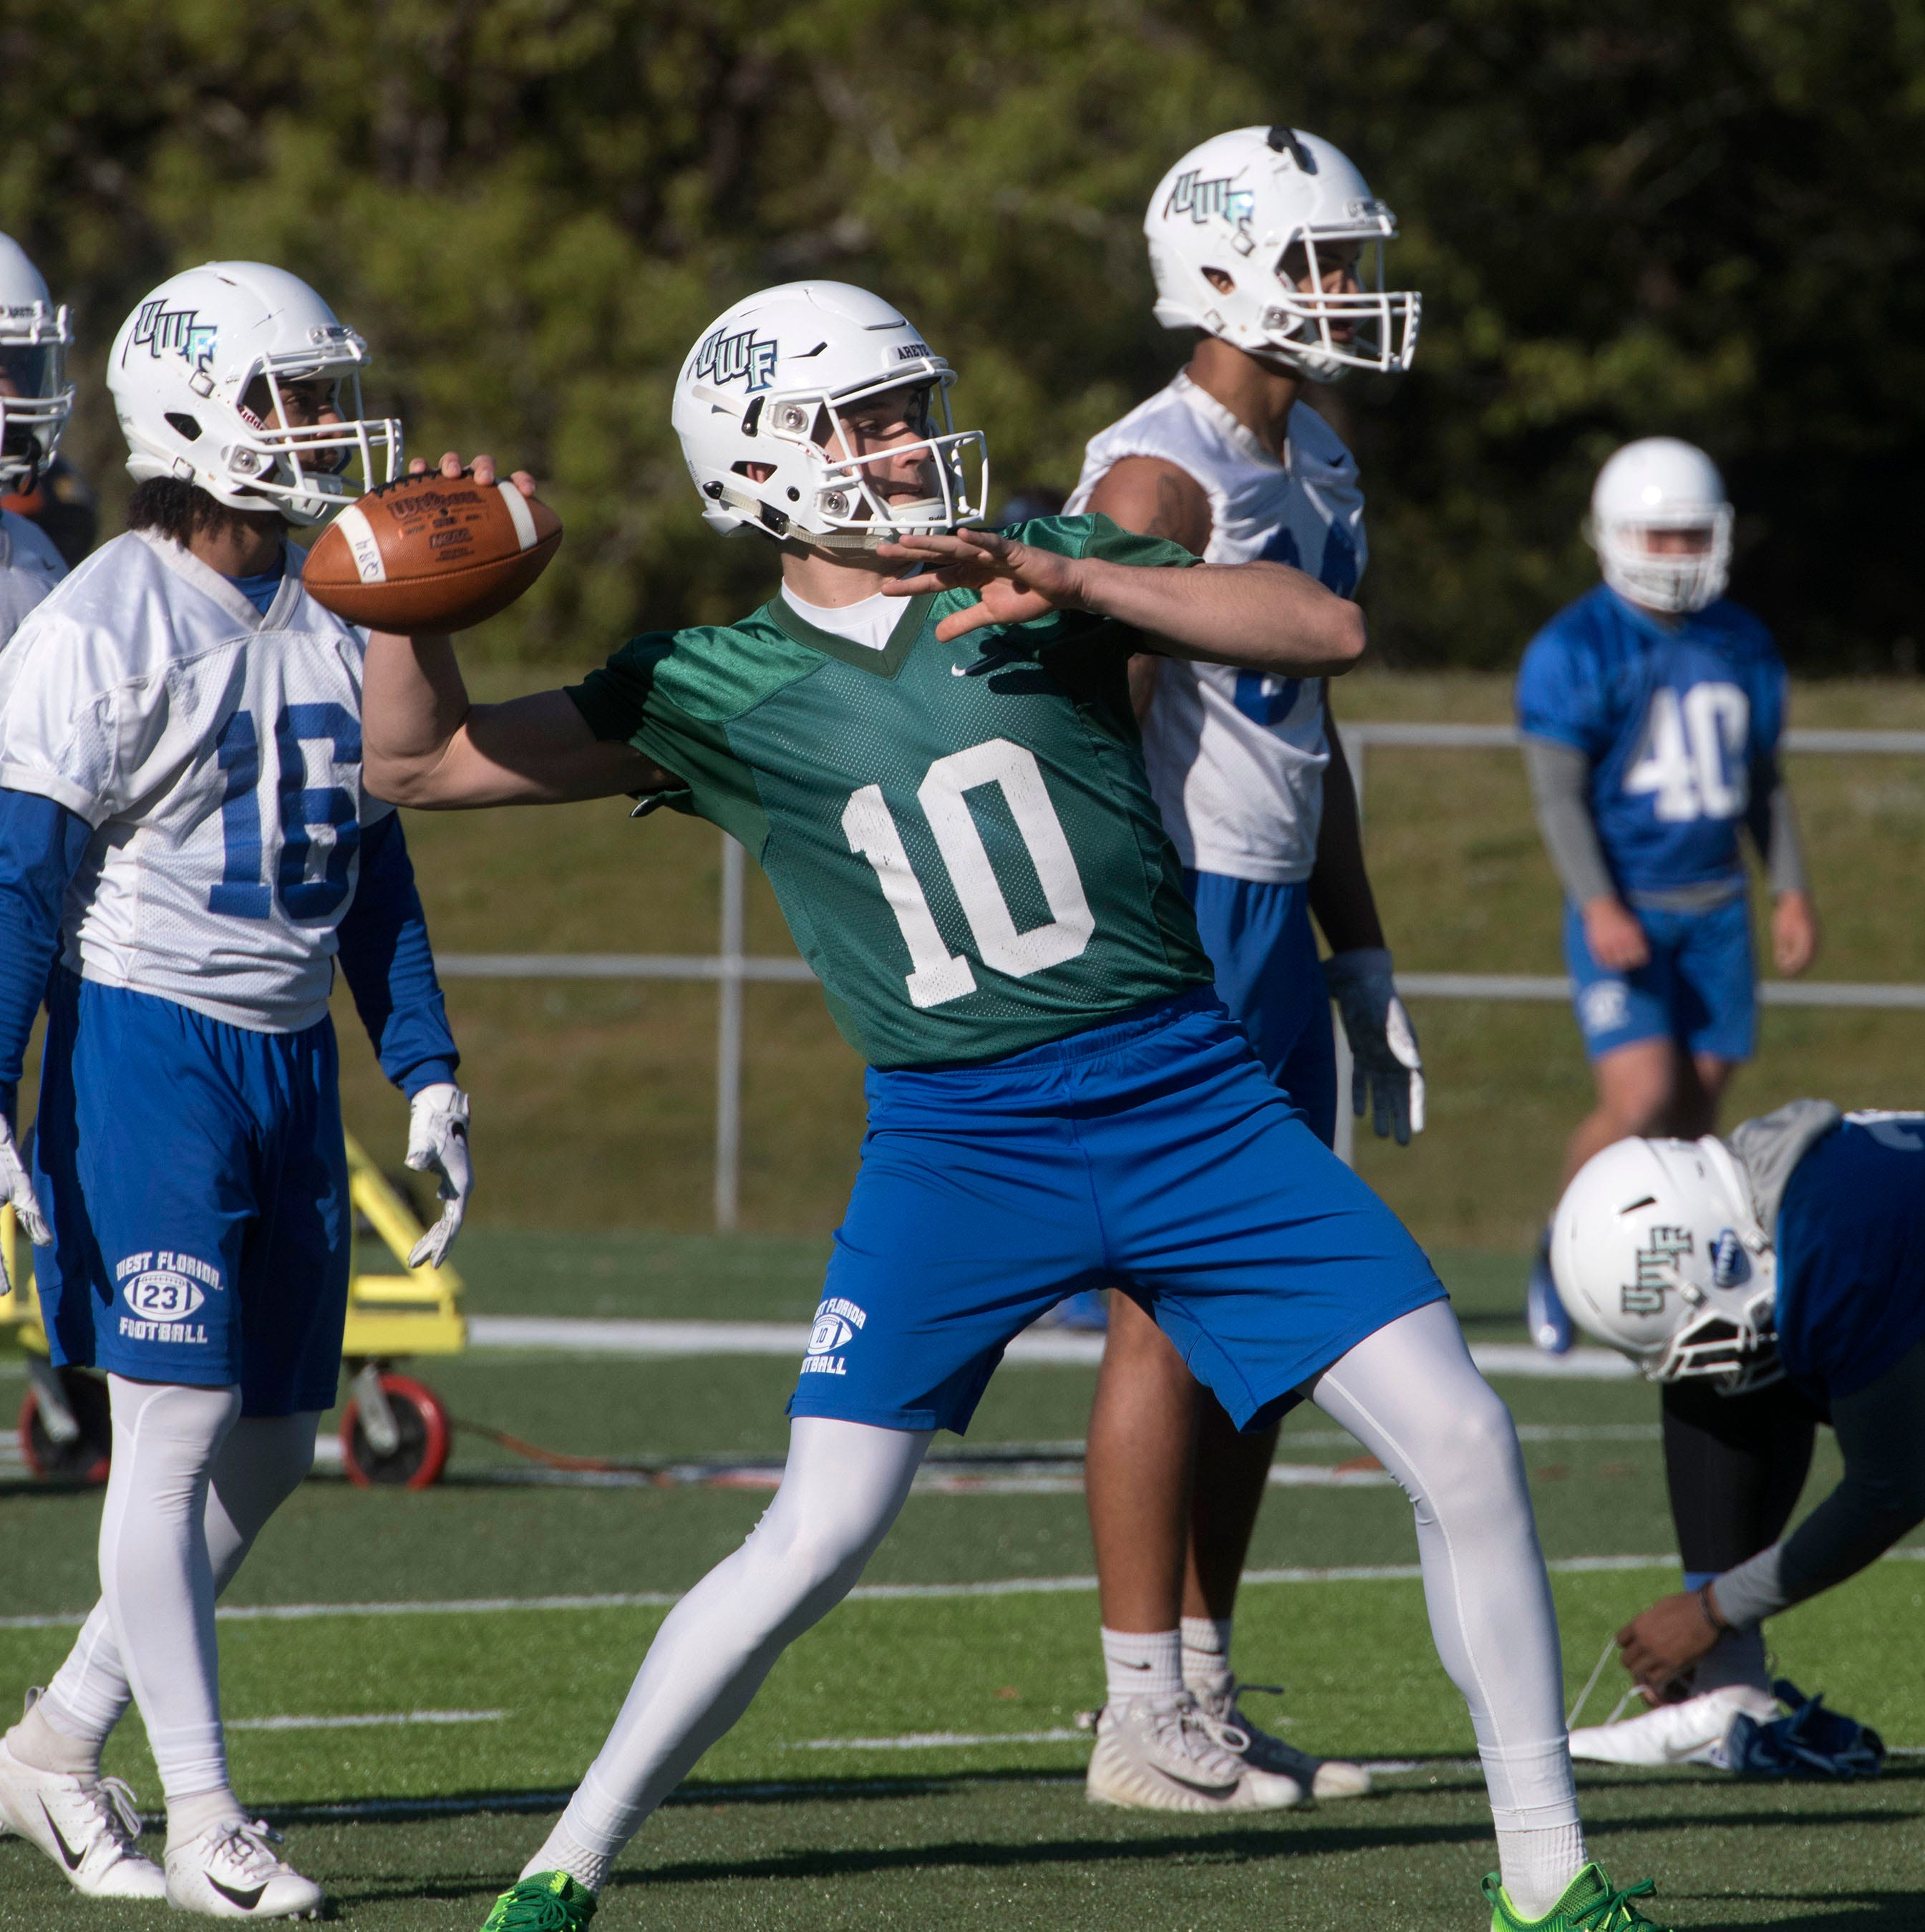 UWF football finds 'No. 1 guy' at quarterback after spring practice